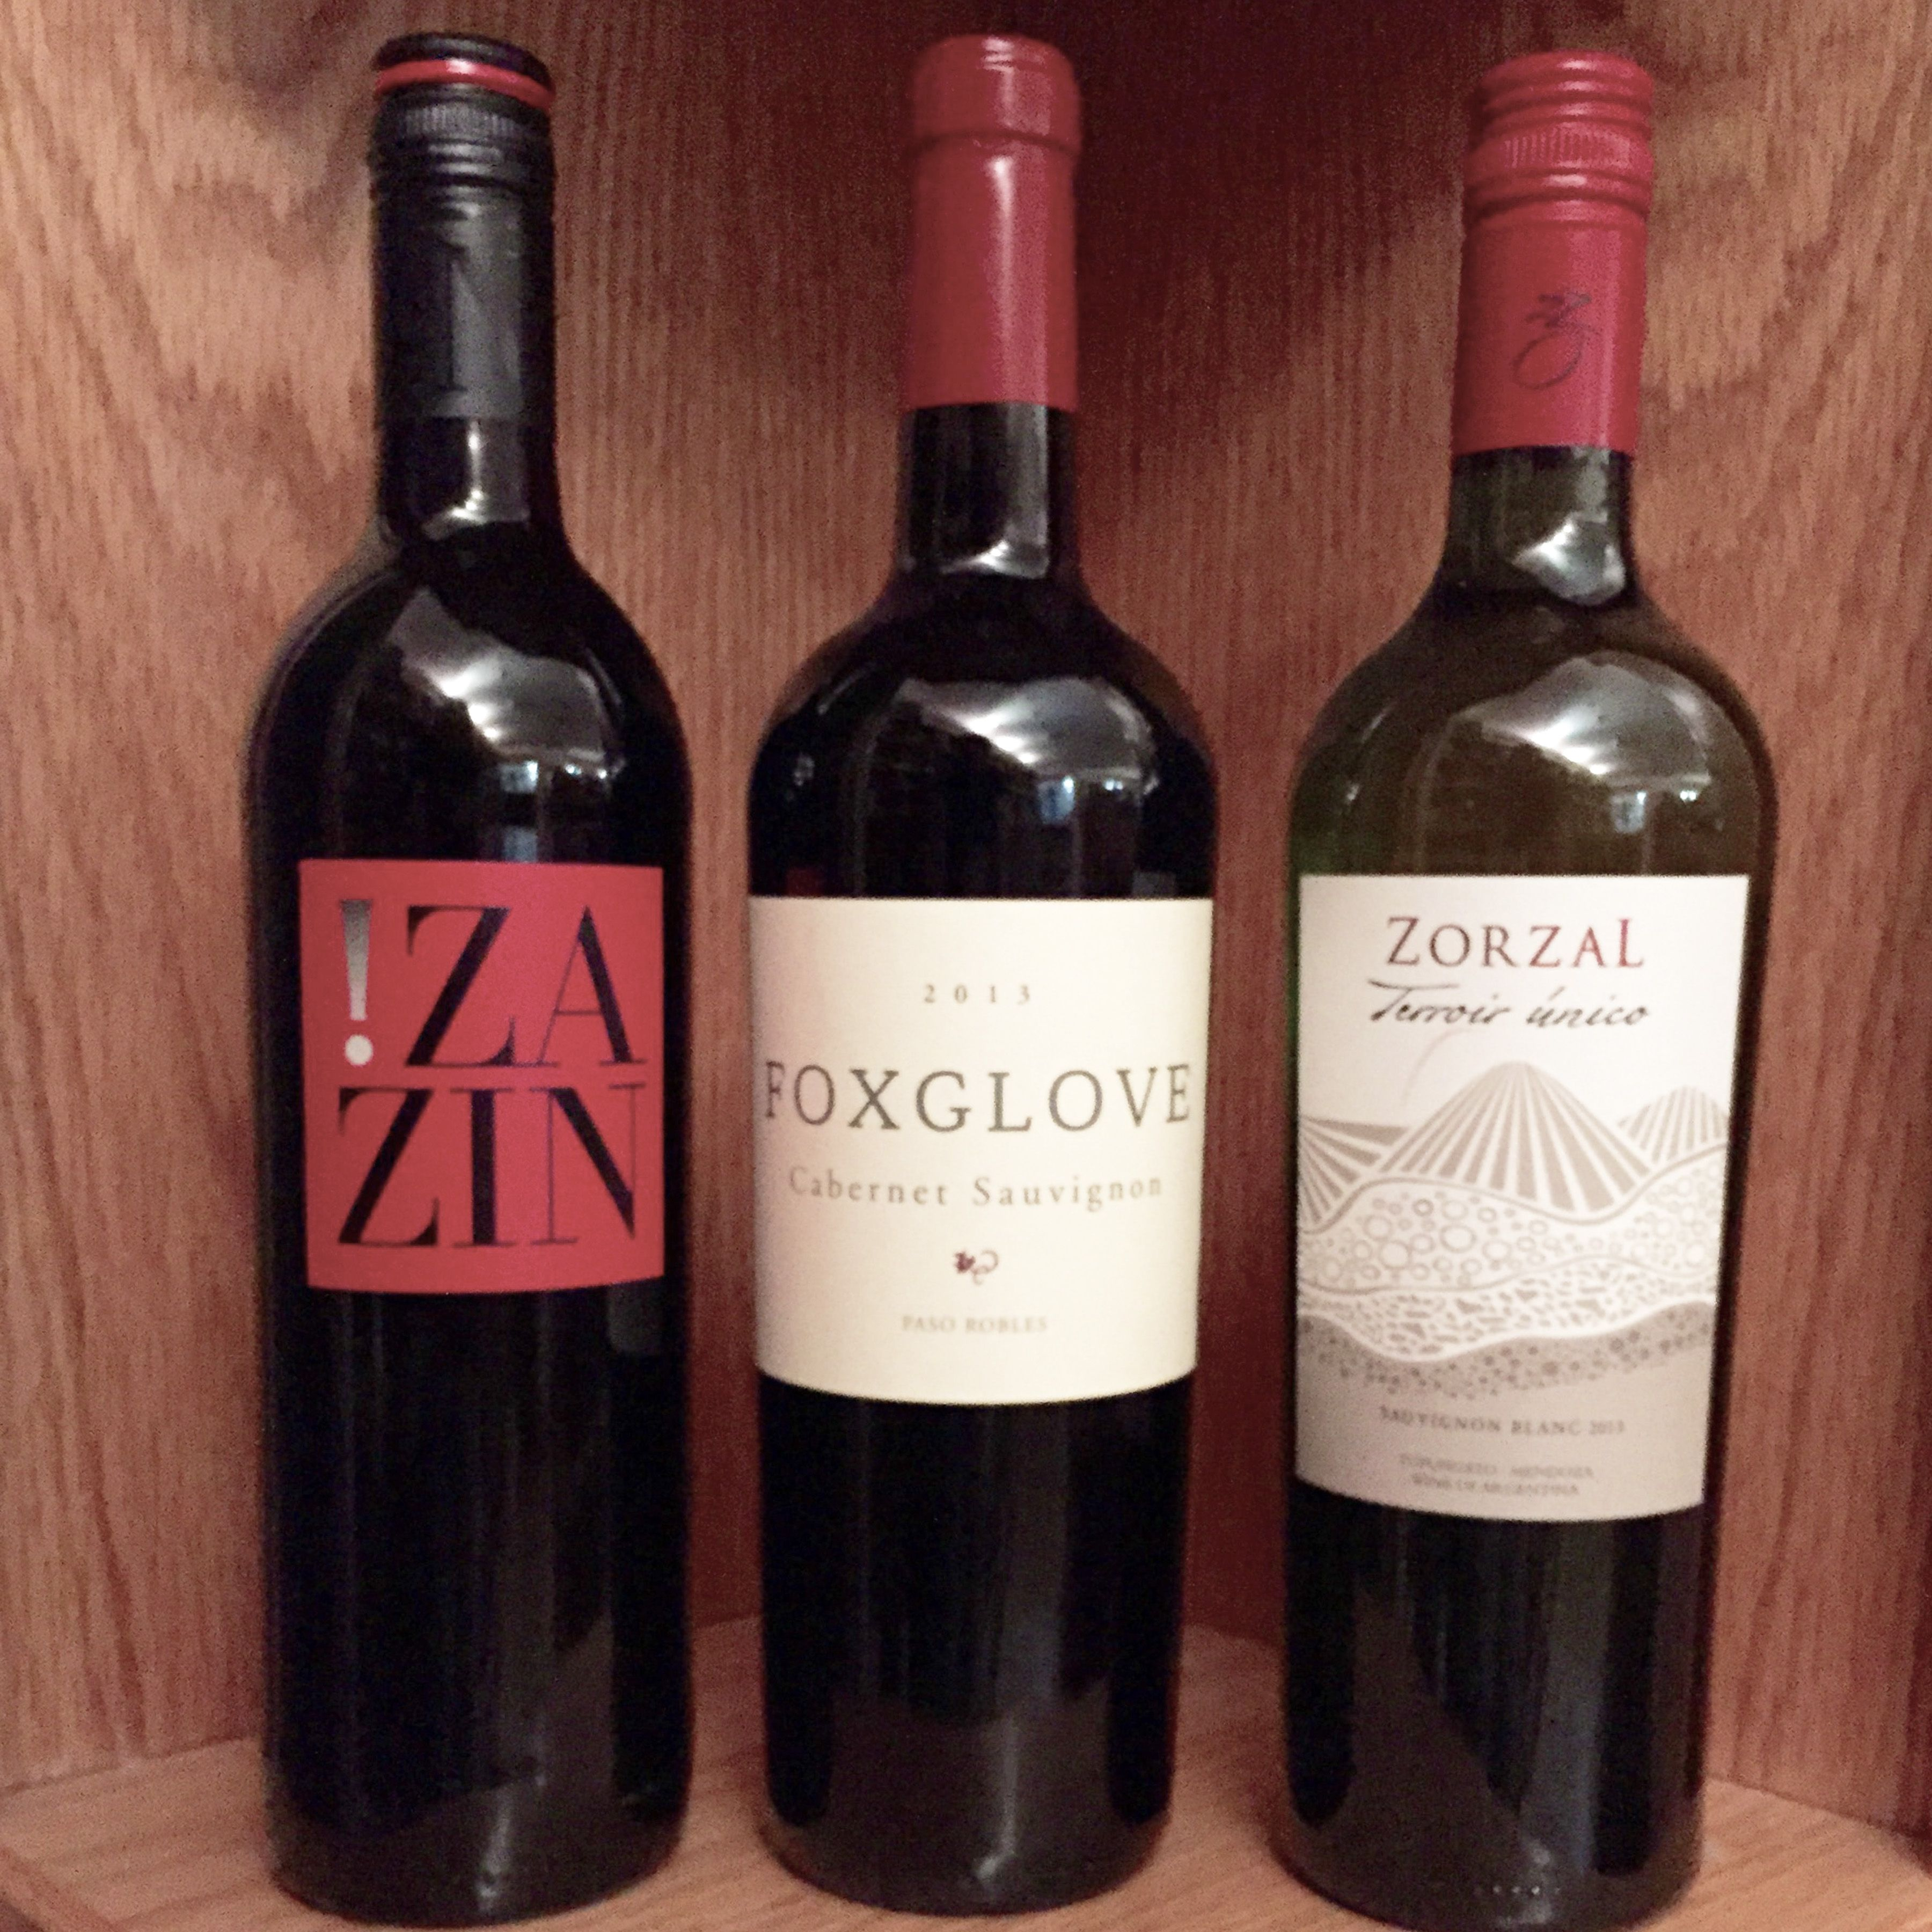 Weekend Specials Free Shipping 6 Bottles Mix Match Offer Only Applies To Bottles Shown Za Zin Old Vines Zinfand Cabernet Sauvignon Sauvignon Blanc Wine